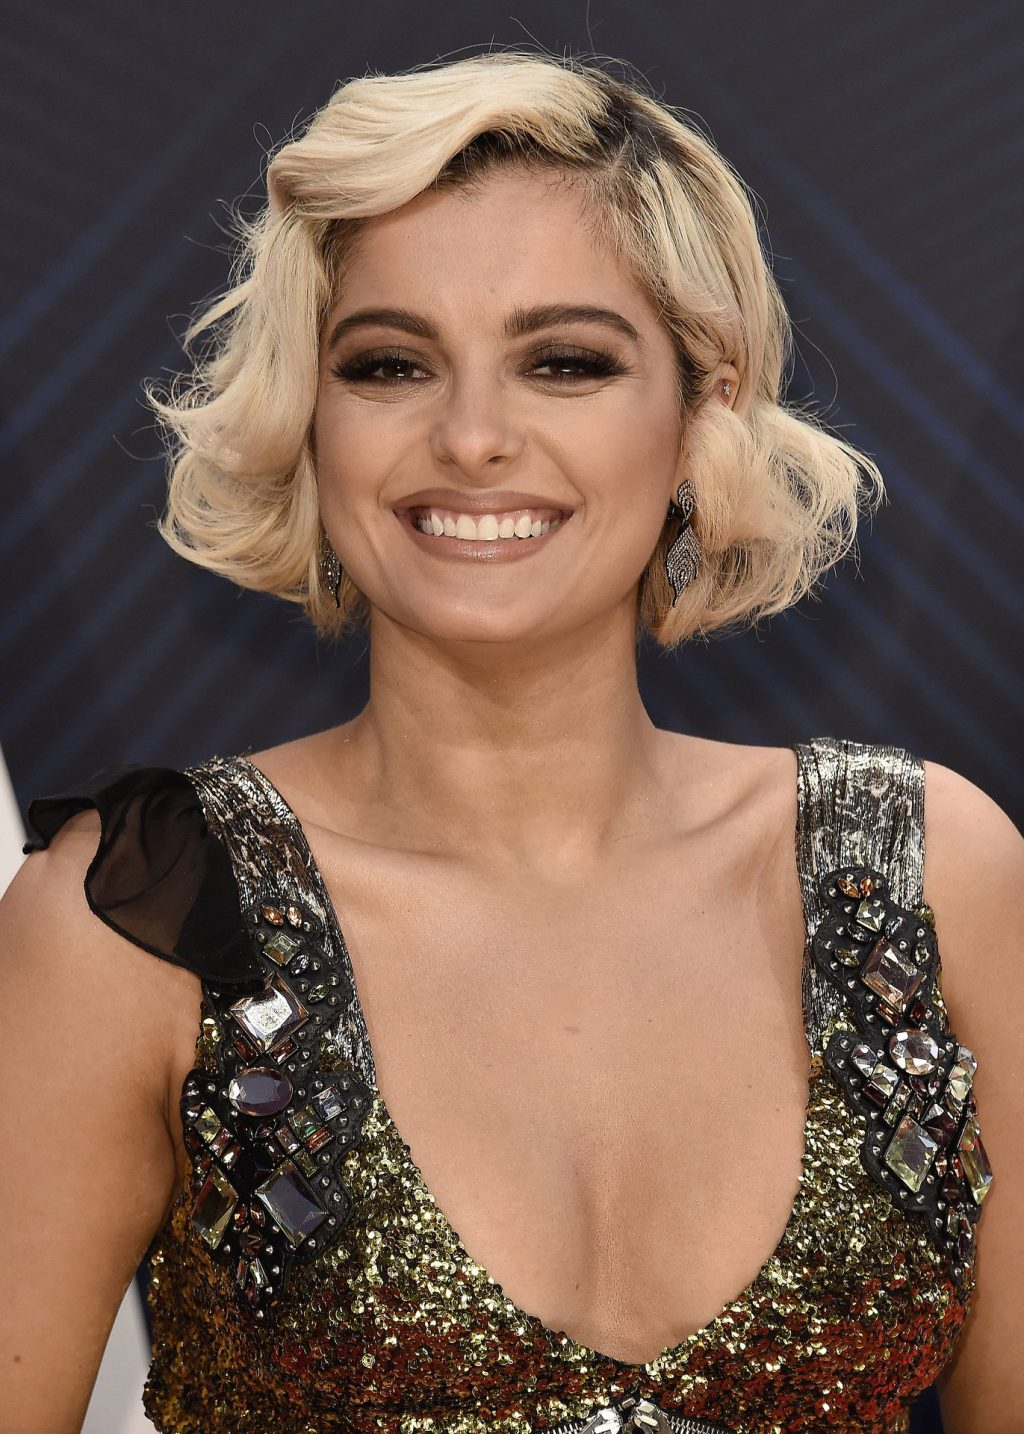 Bebe Rexha Cleavage - #TheFappening